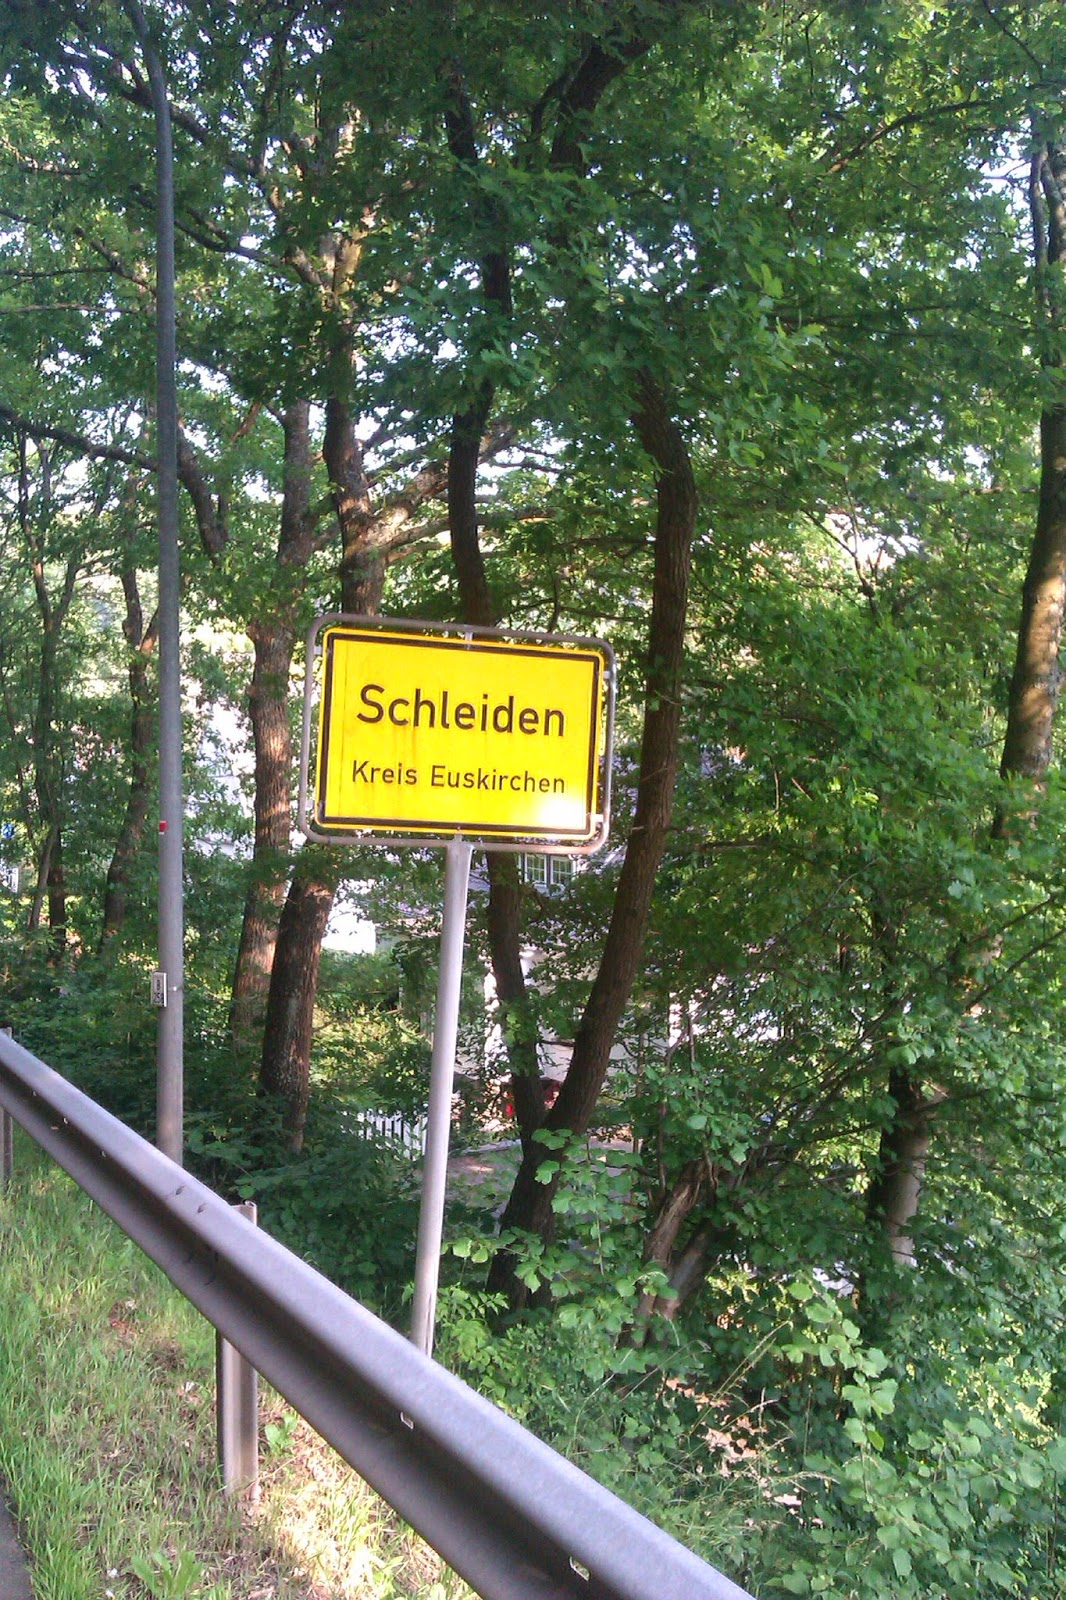 Entering village called Schleiden